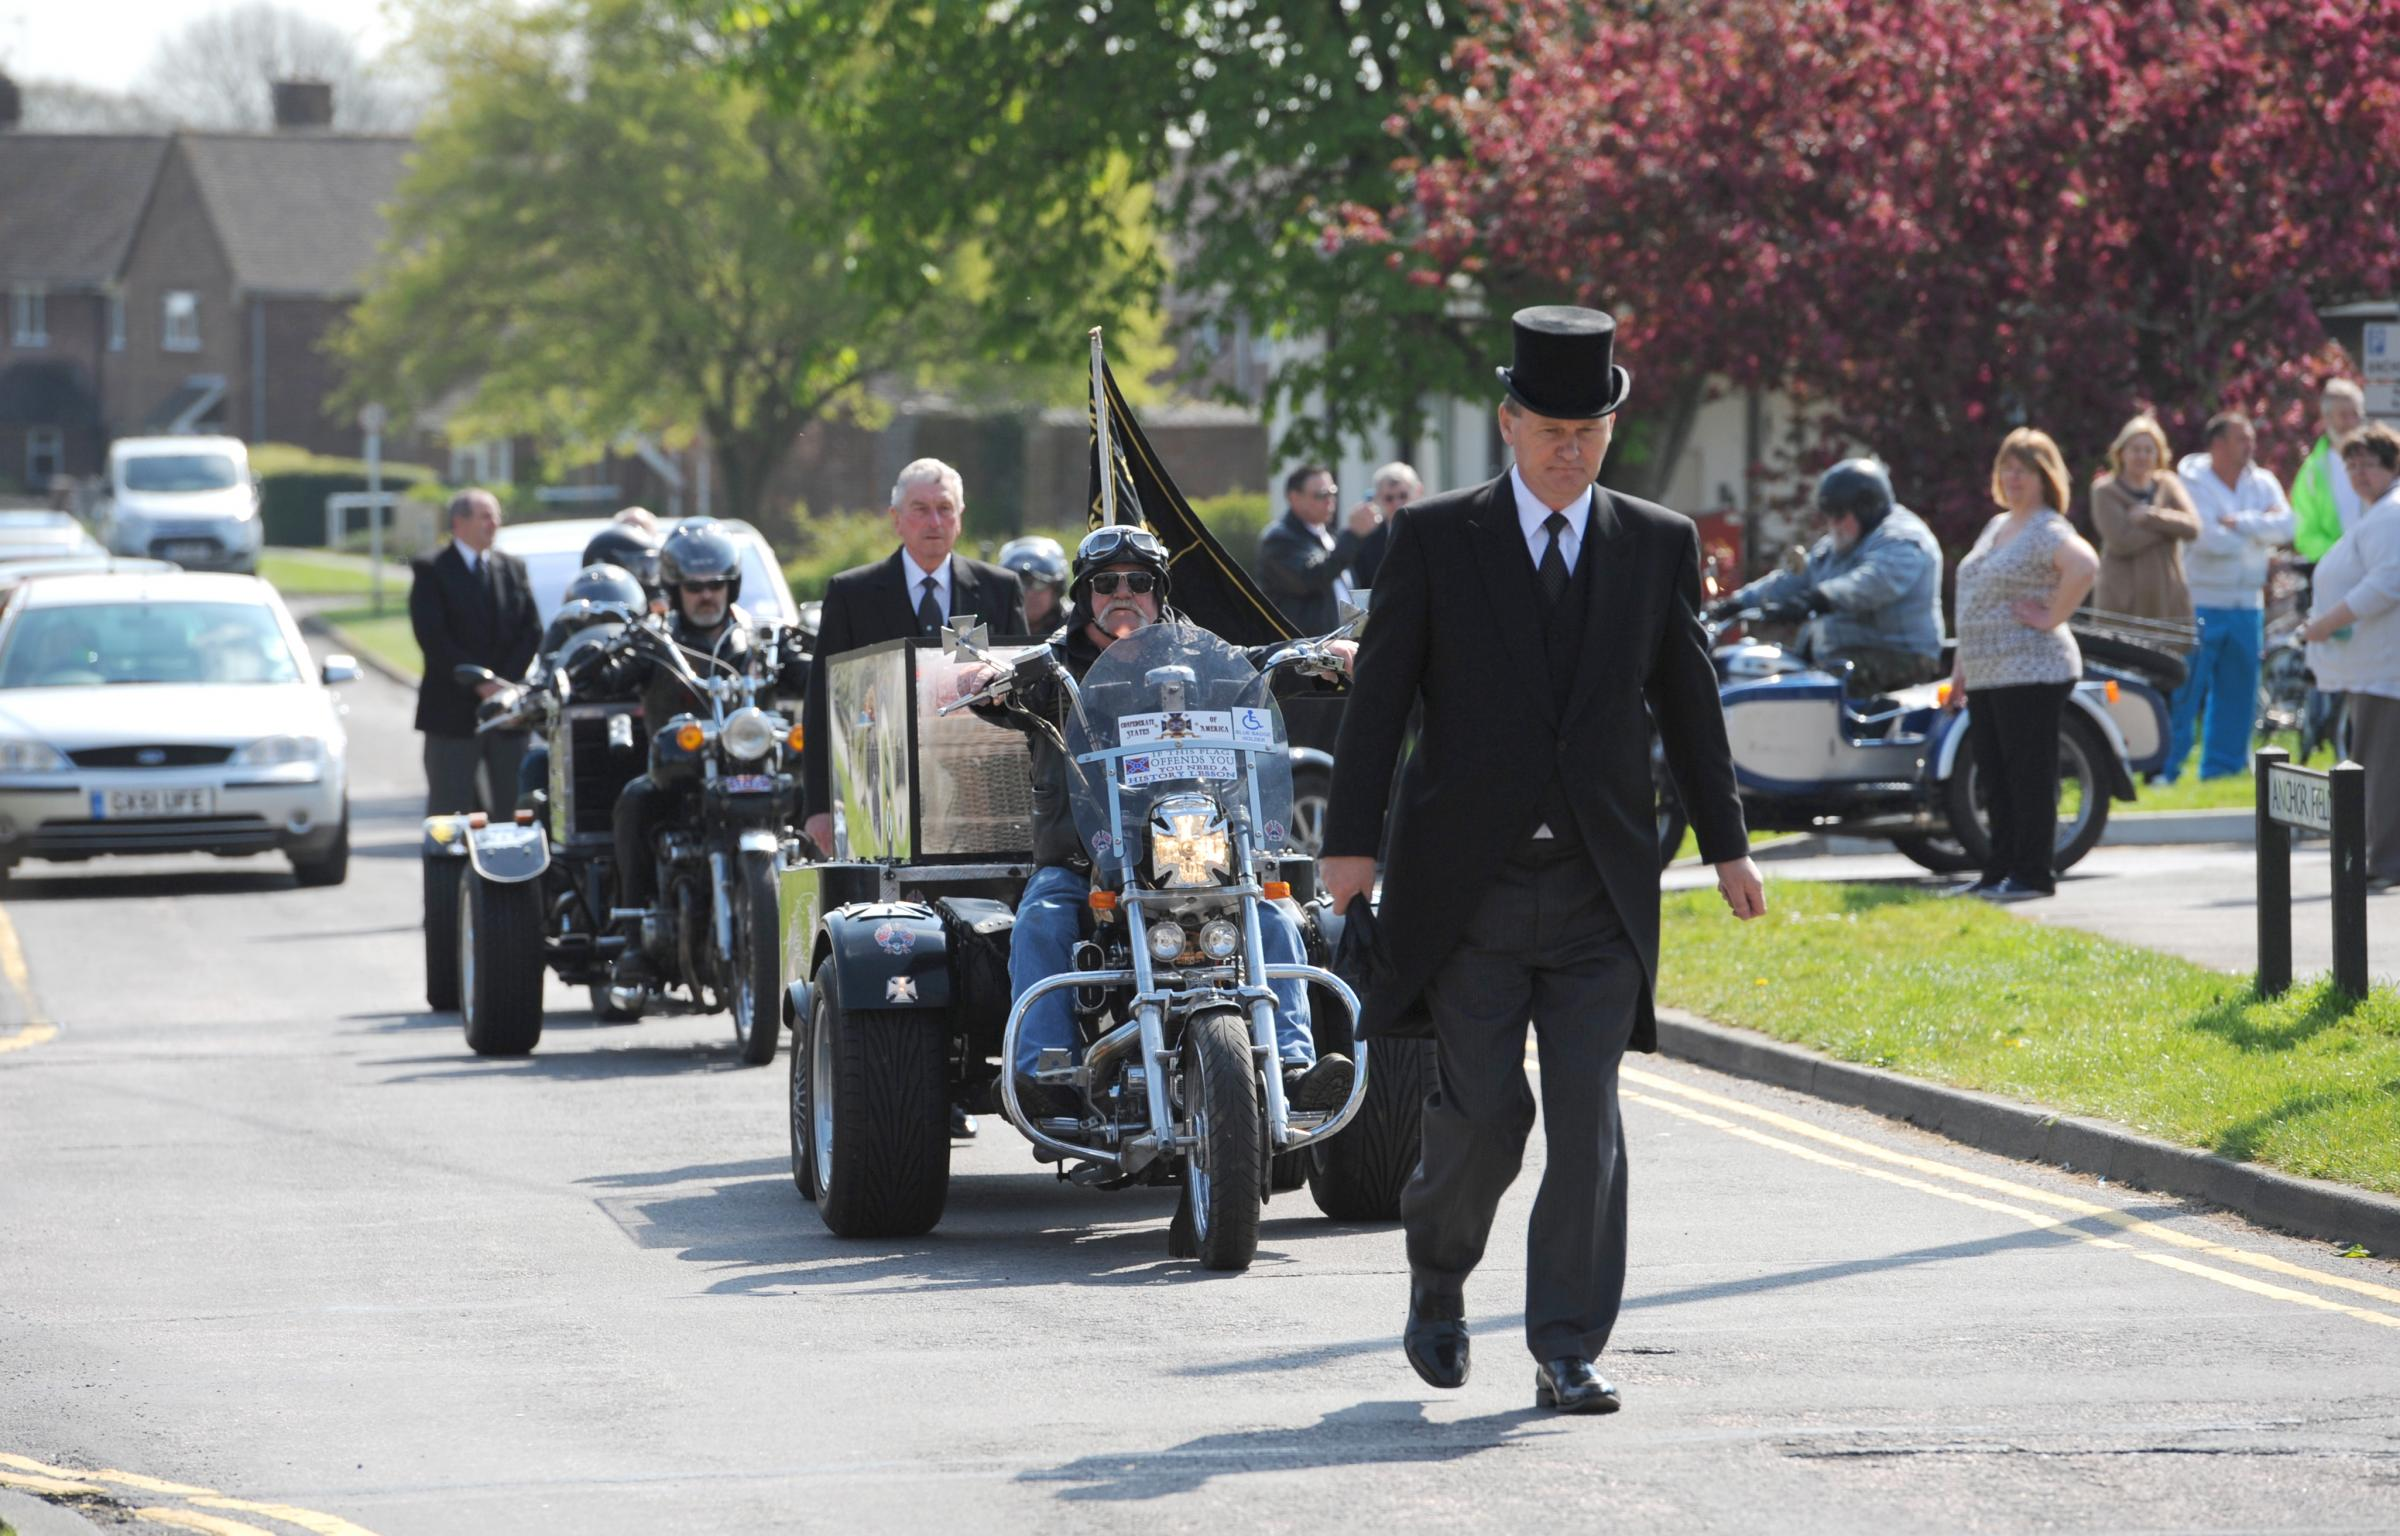 VIDEO: Biker given one last journey for funeral